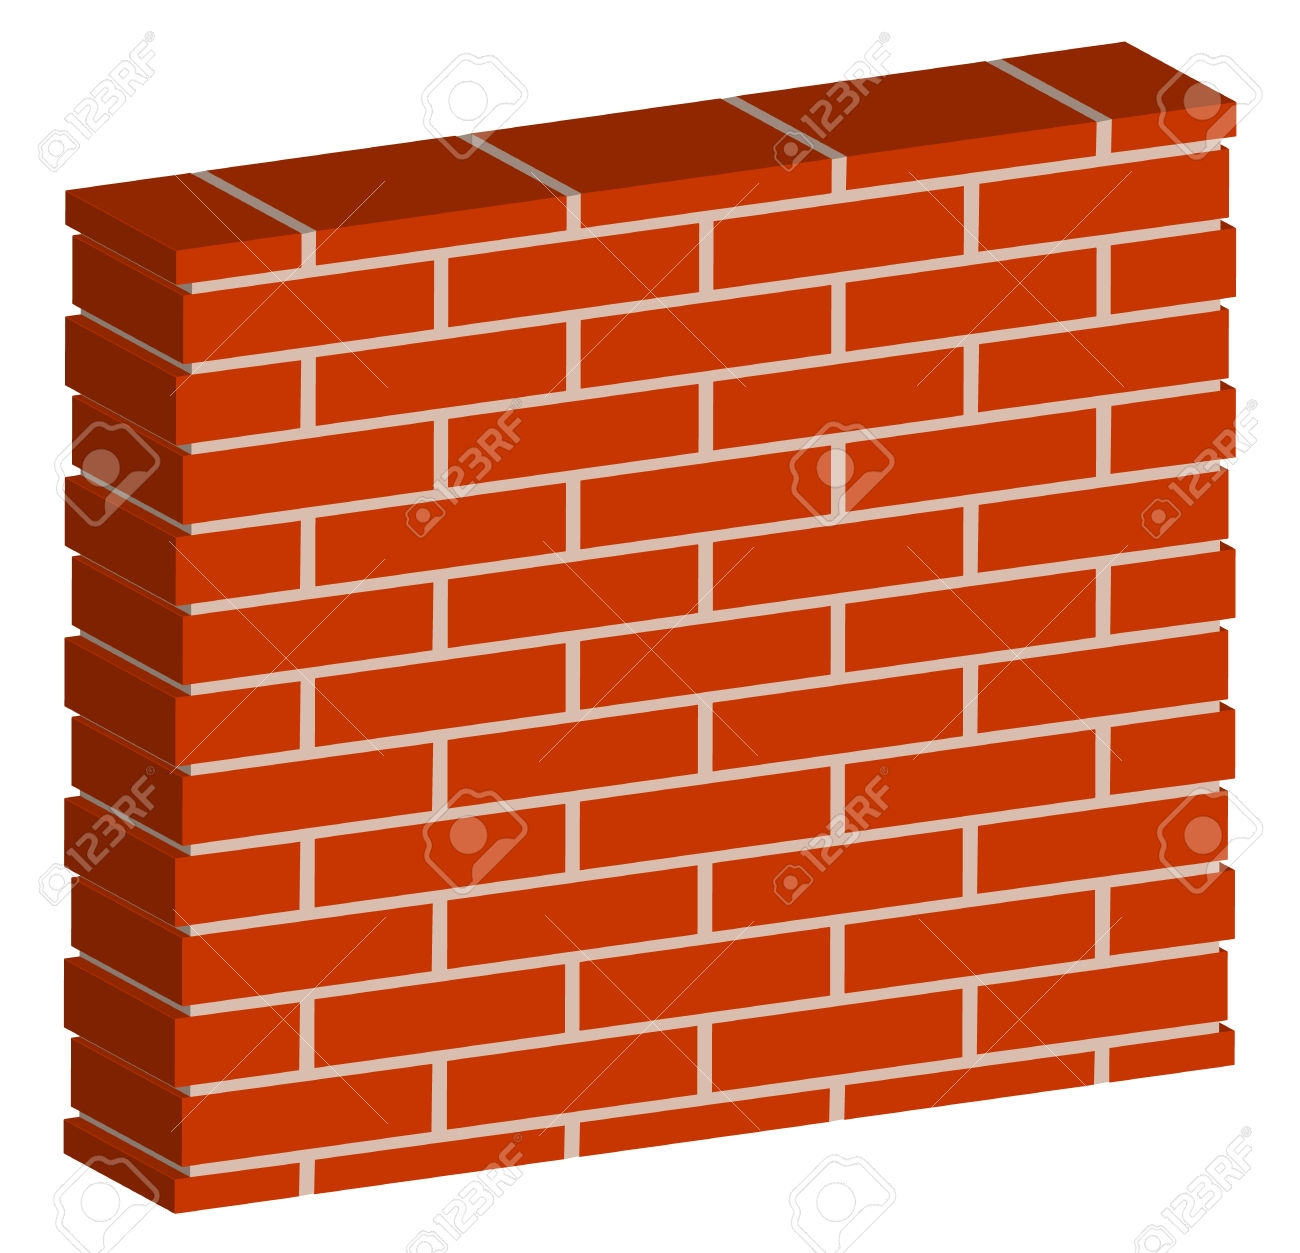 Building Brick Wall Clipart.